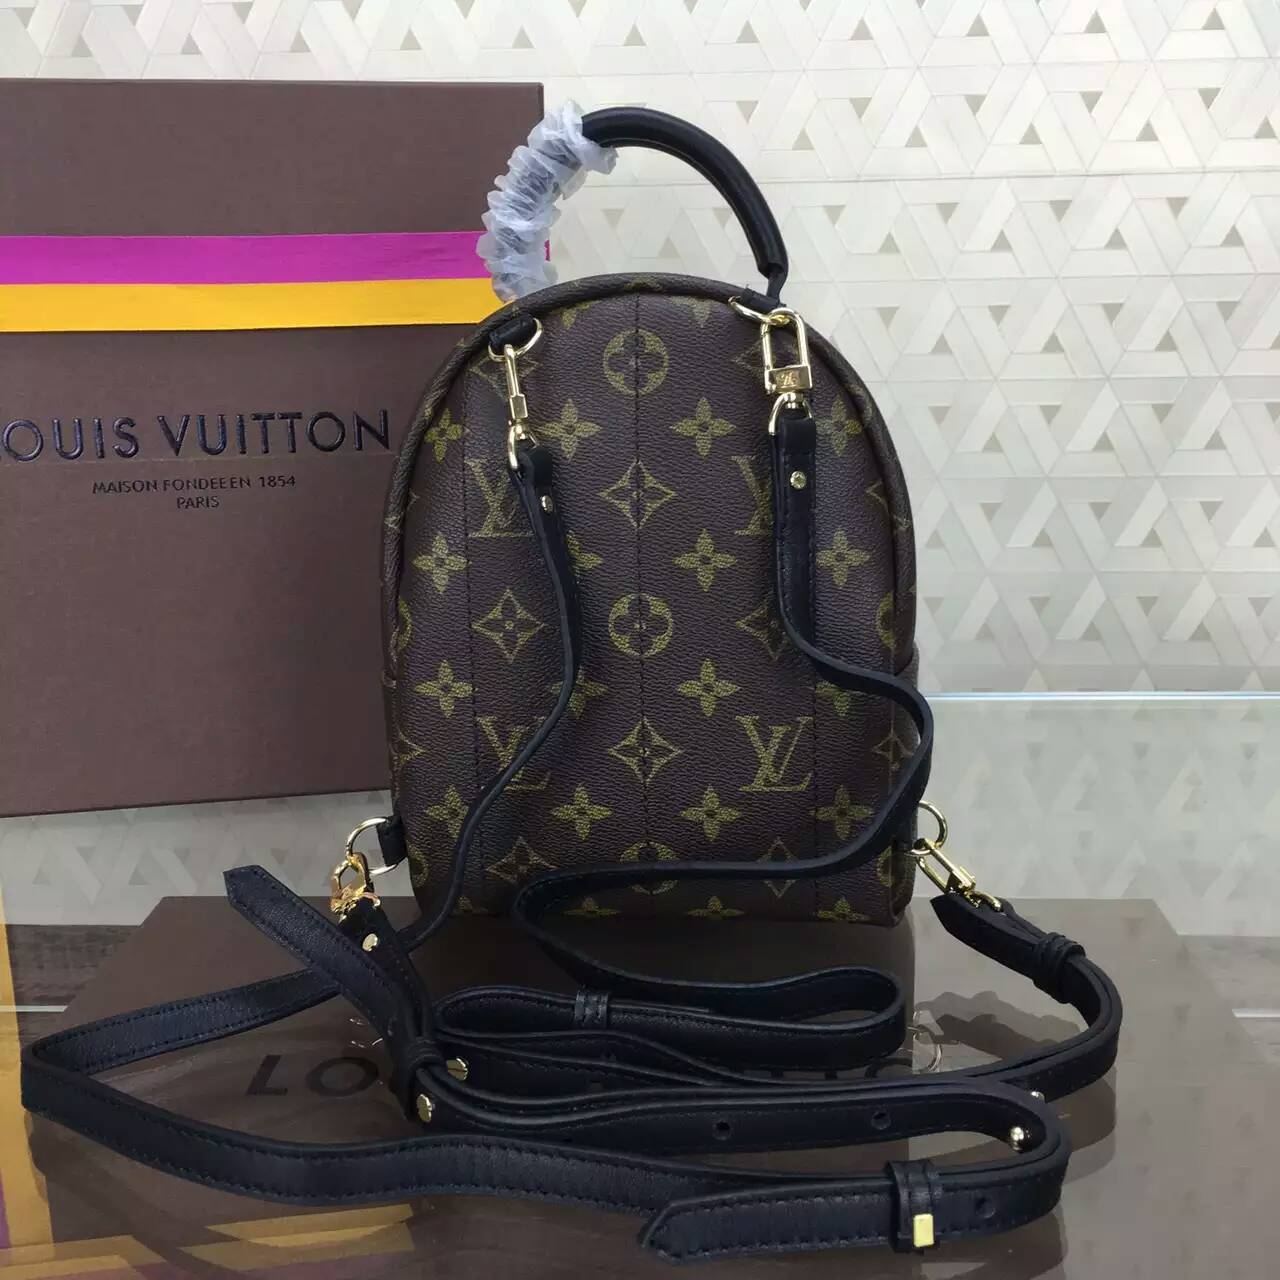 fashion sac louis vuitton solde m41562 w17h20d9